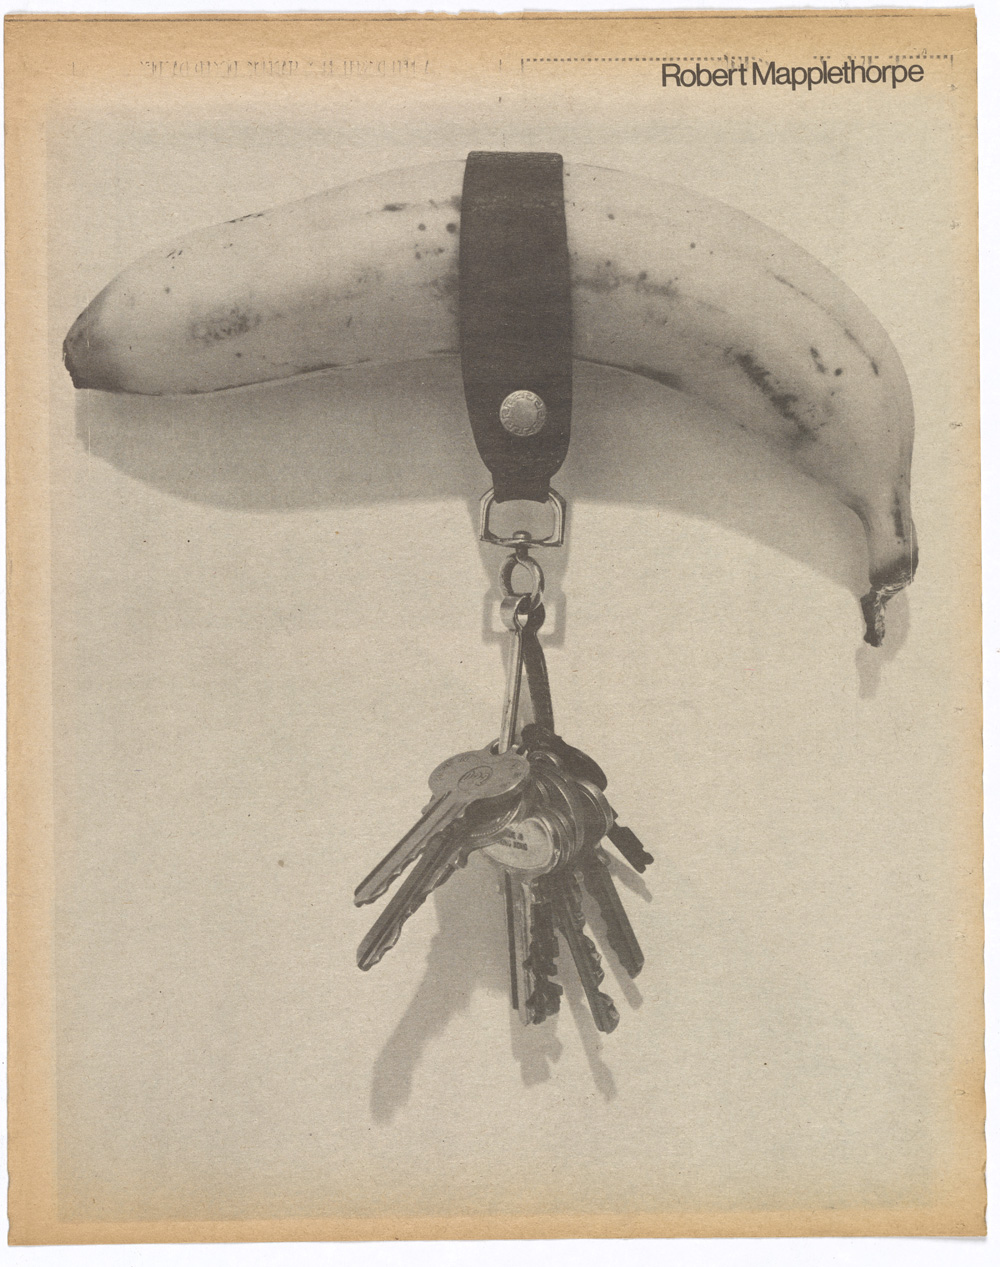 2.00a_Fig_22 Robert Mapplethorpe (American, 1946–89). Banana & Keys, 1974. From Interview 5, no. 11 (November 1975): n. p. Gift of The Robert Mapplethorpe Foundation.